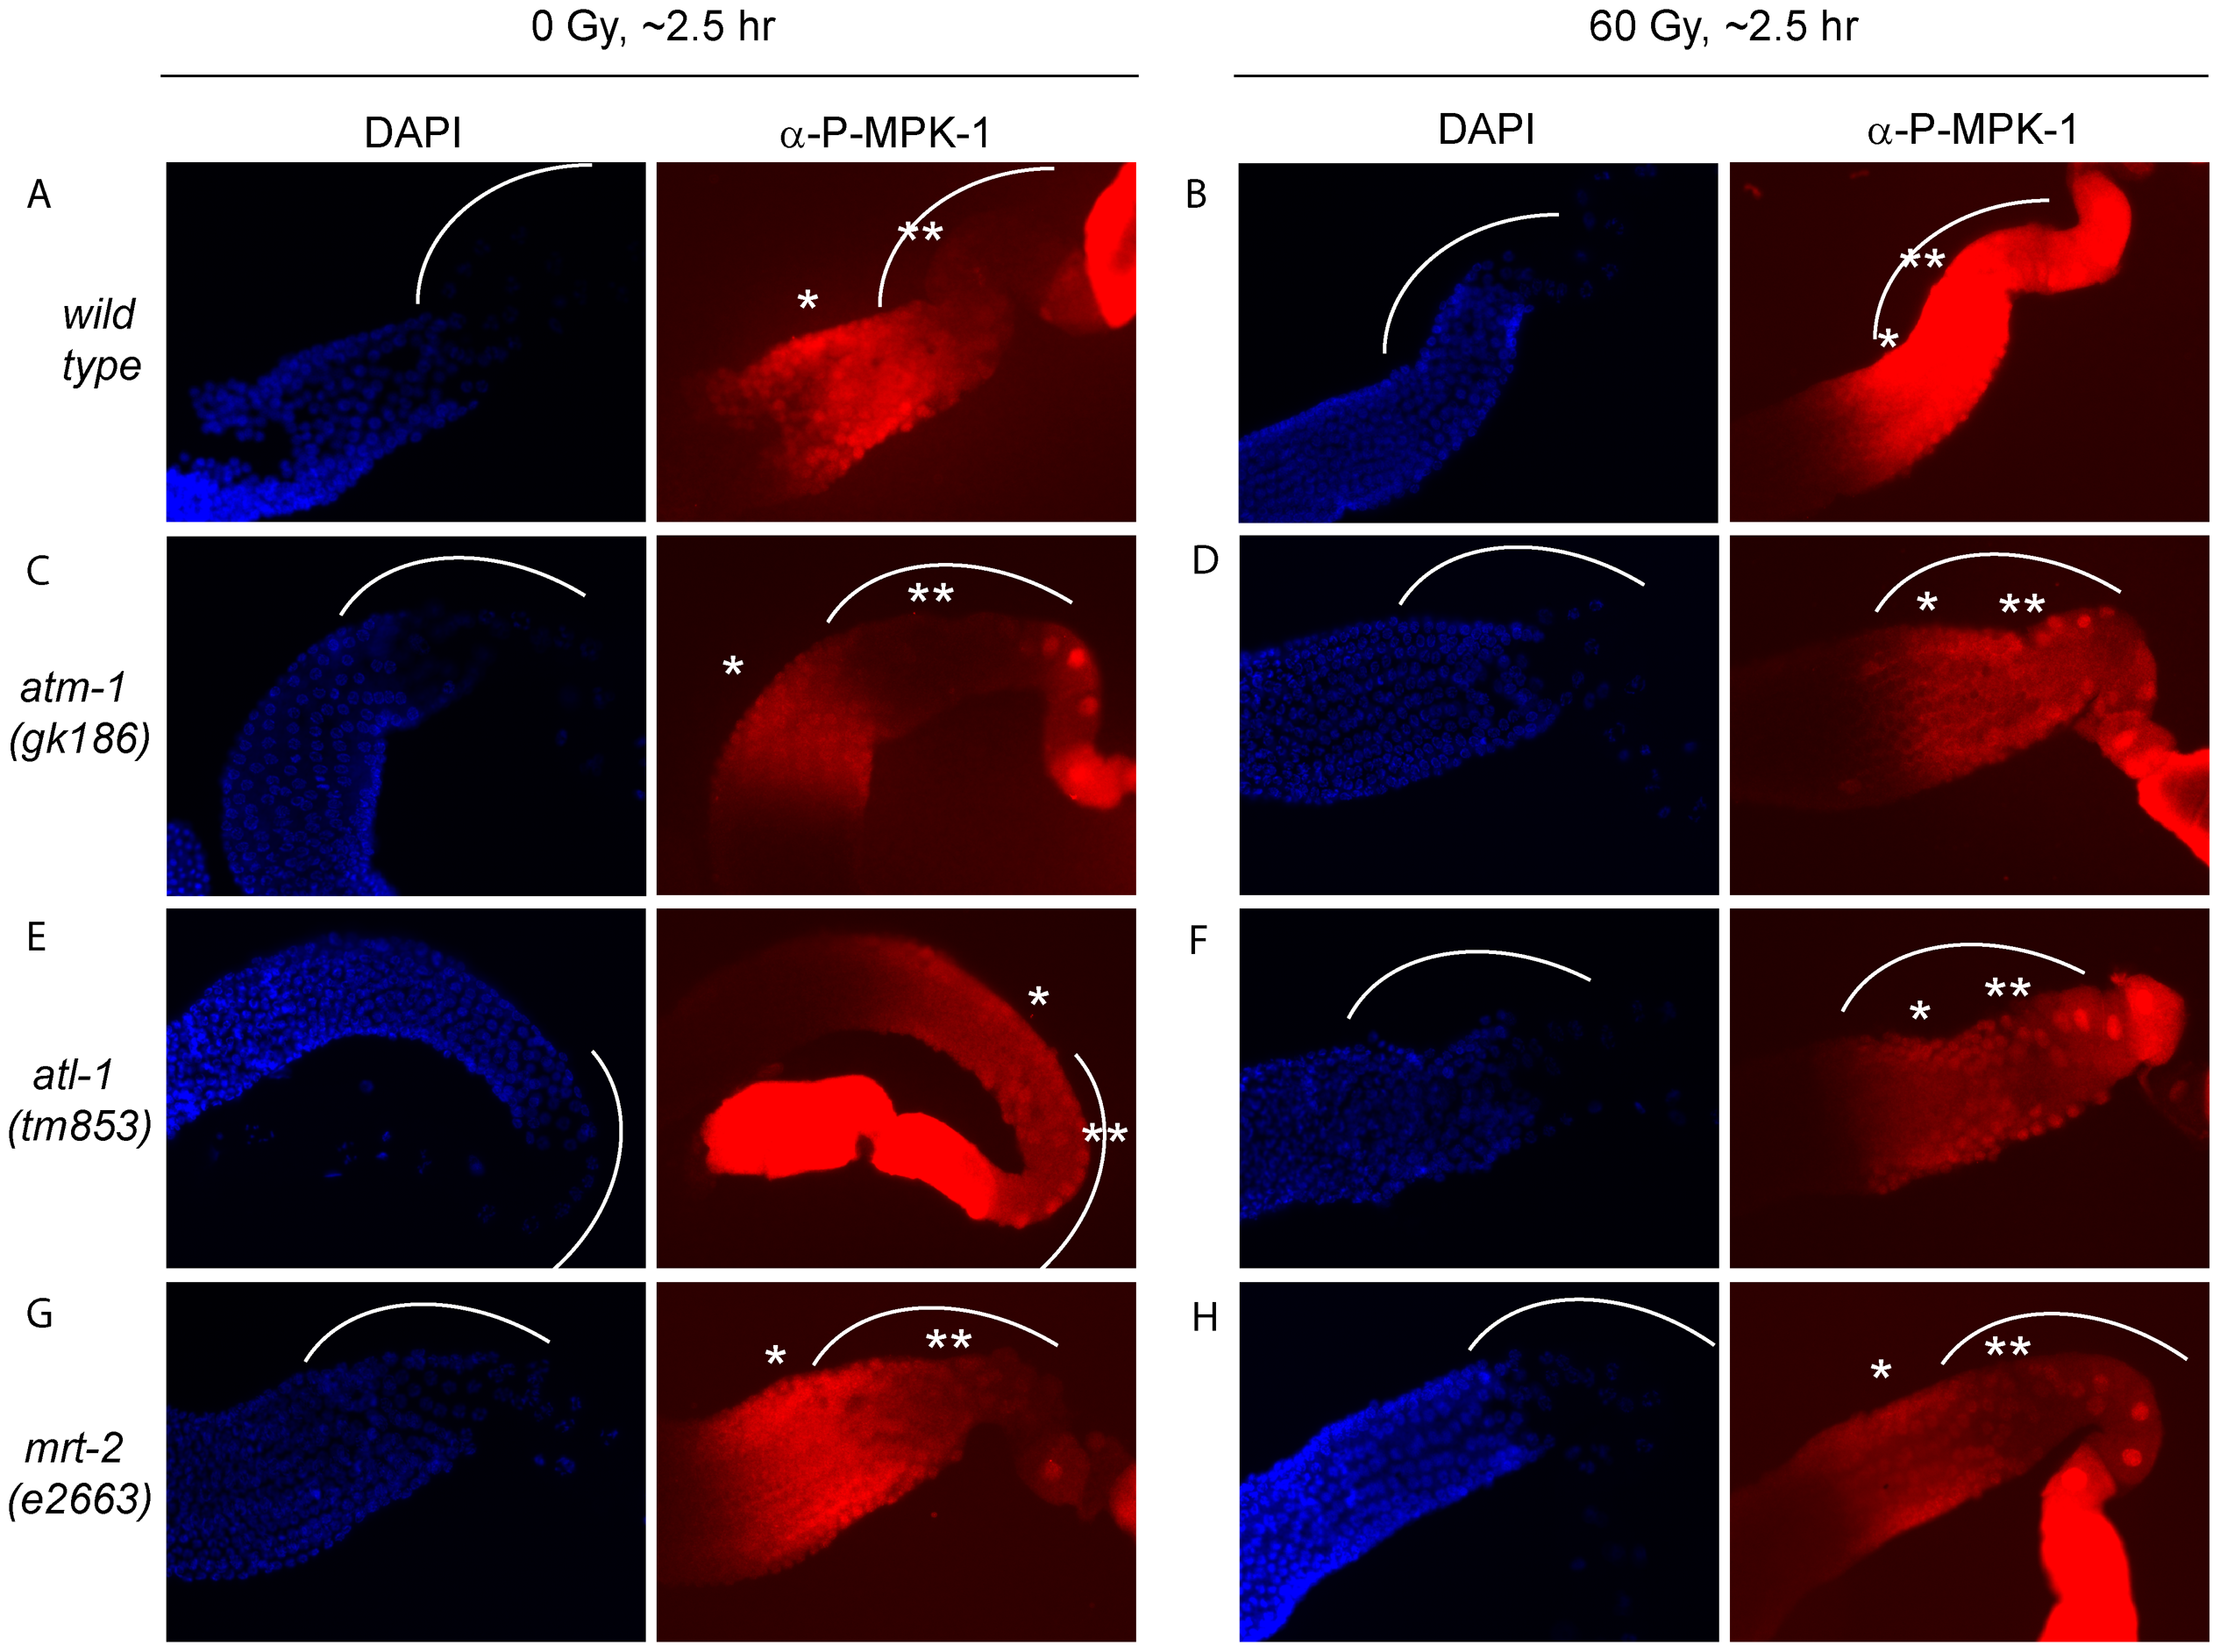 The activation of MPK-1 by irradiation is not dependent on the DNA damage response pathway.